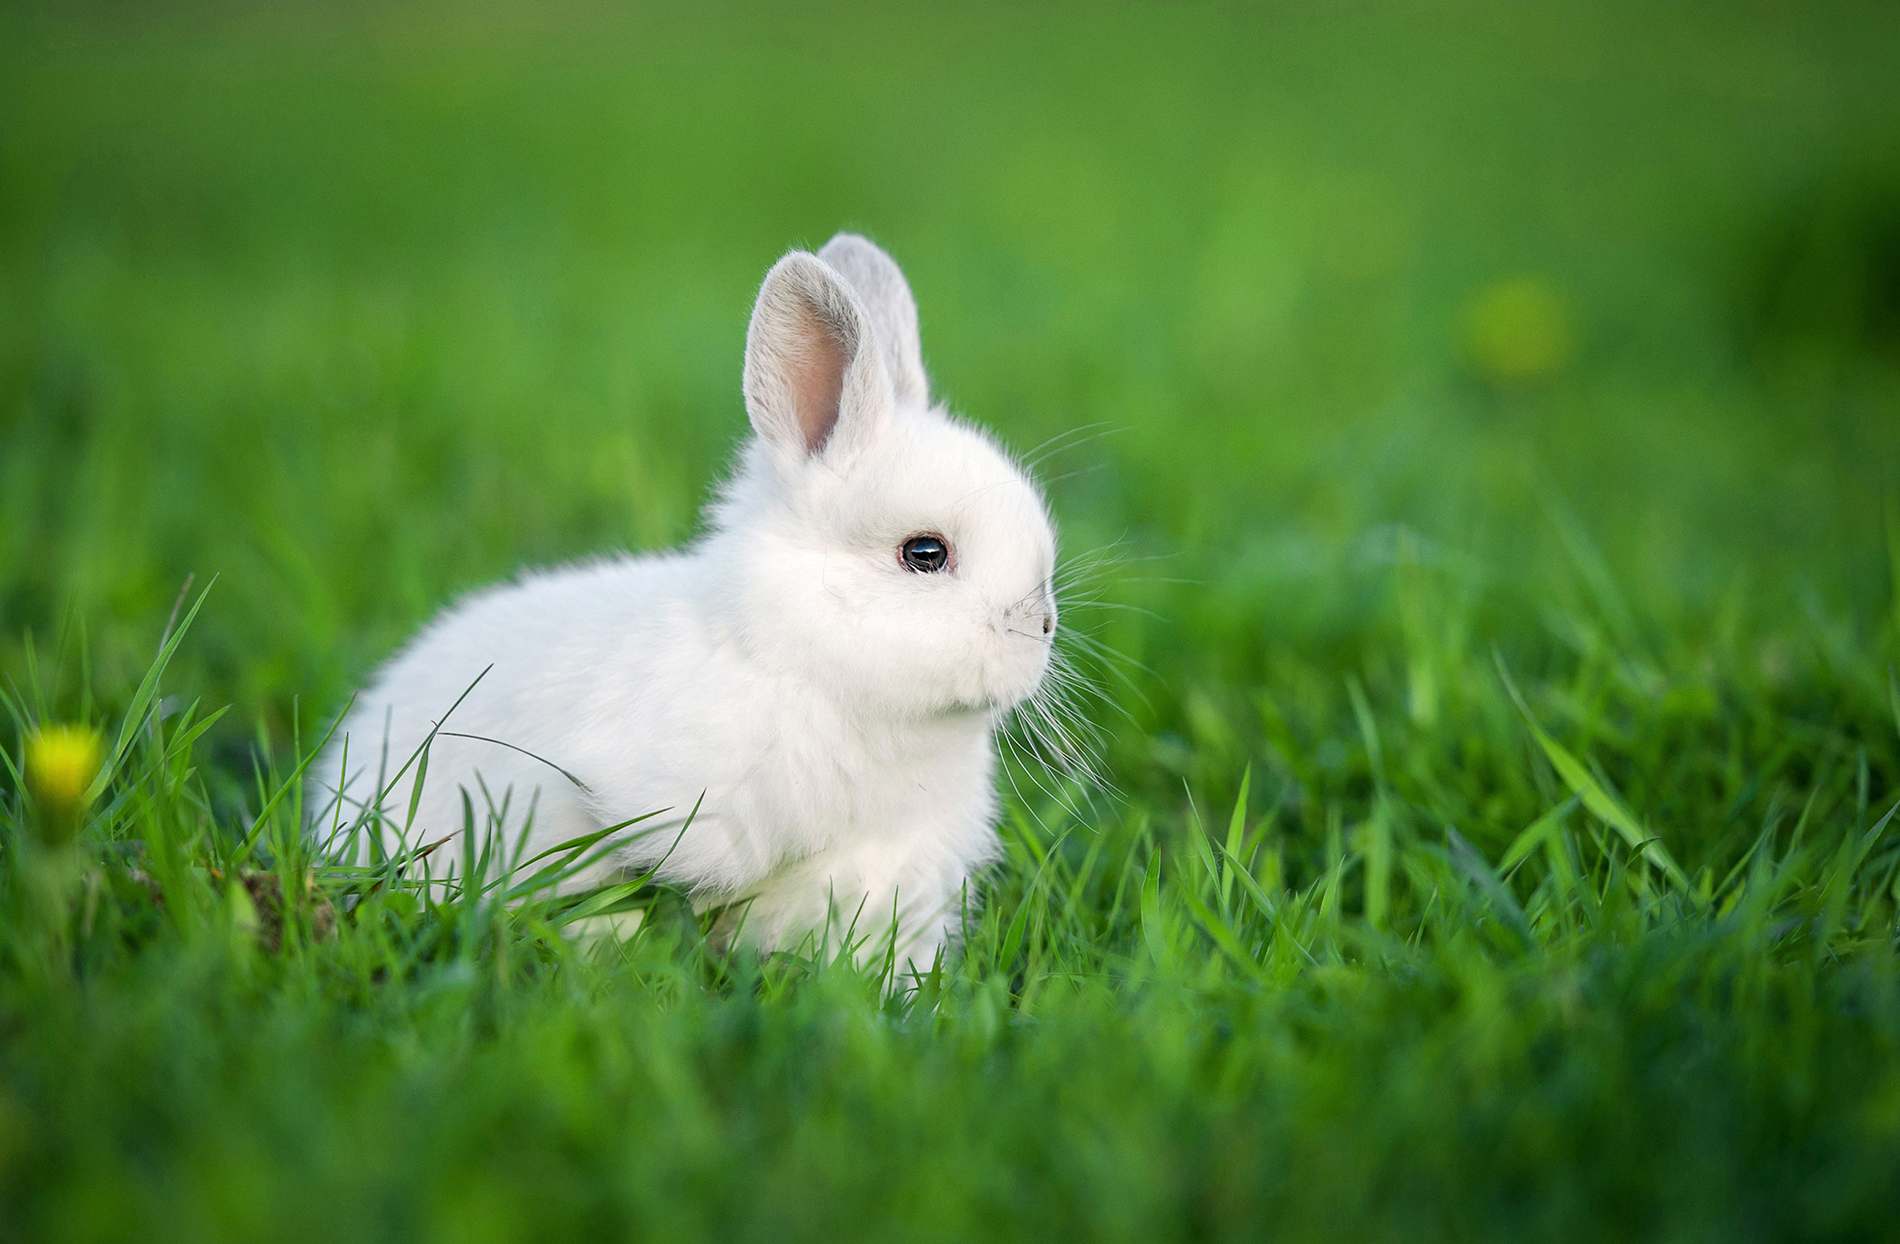 Green grass rabbit 53653